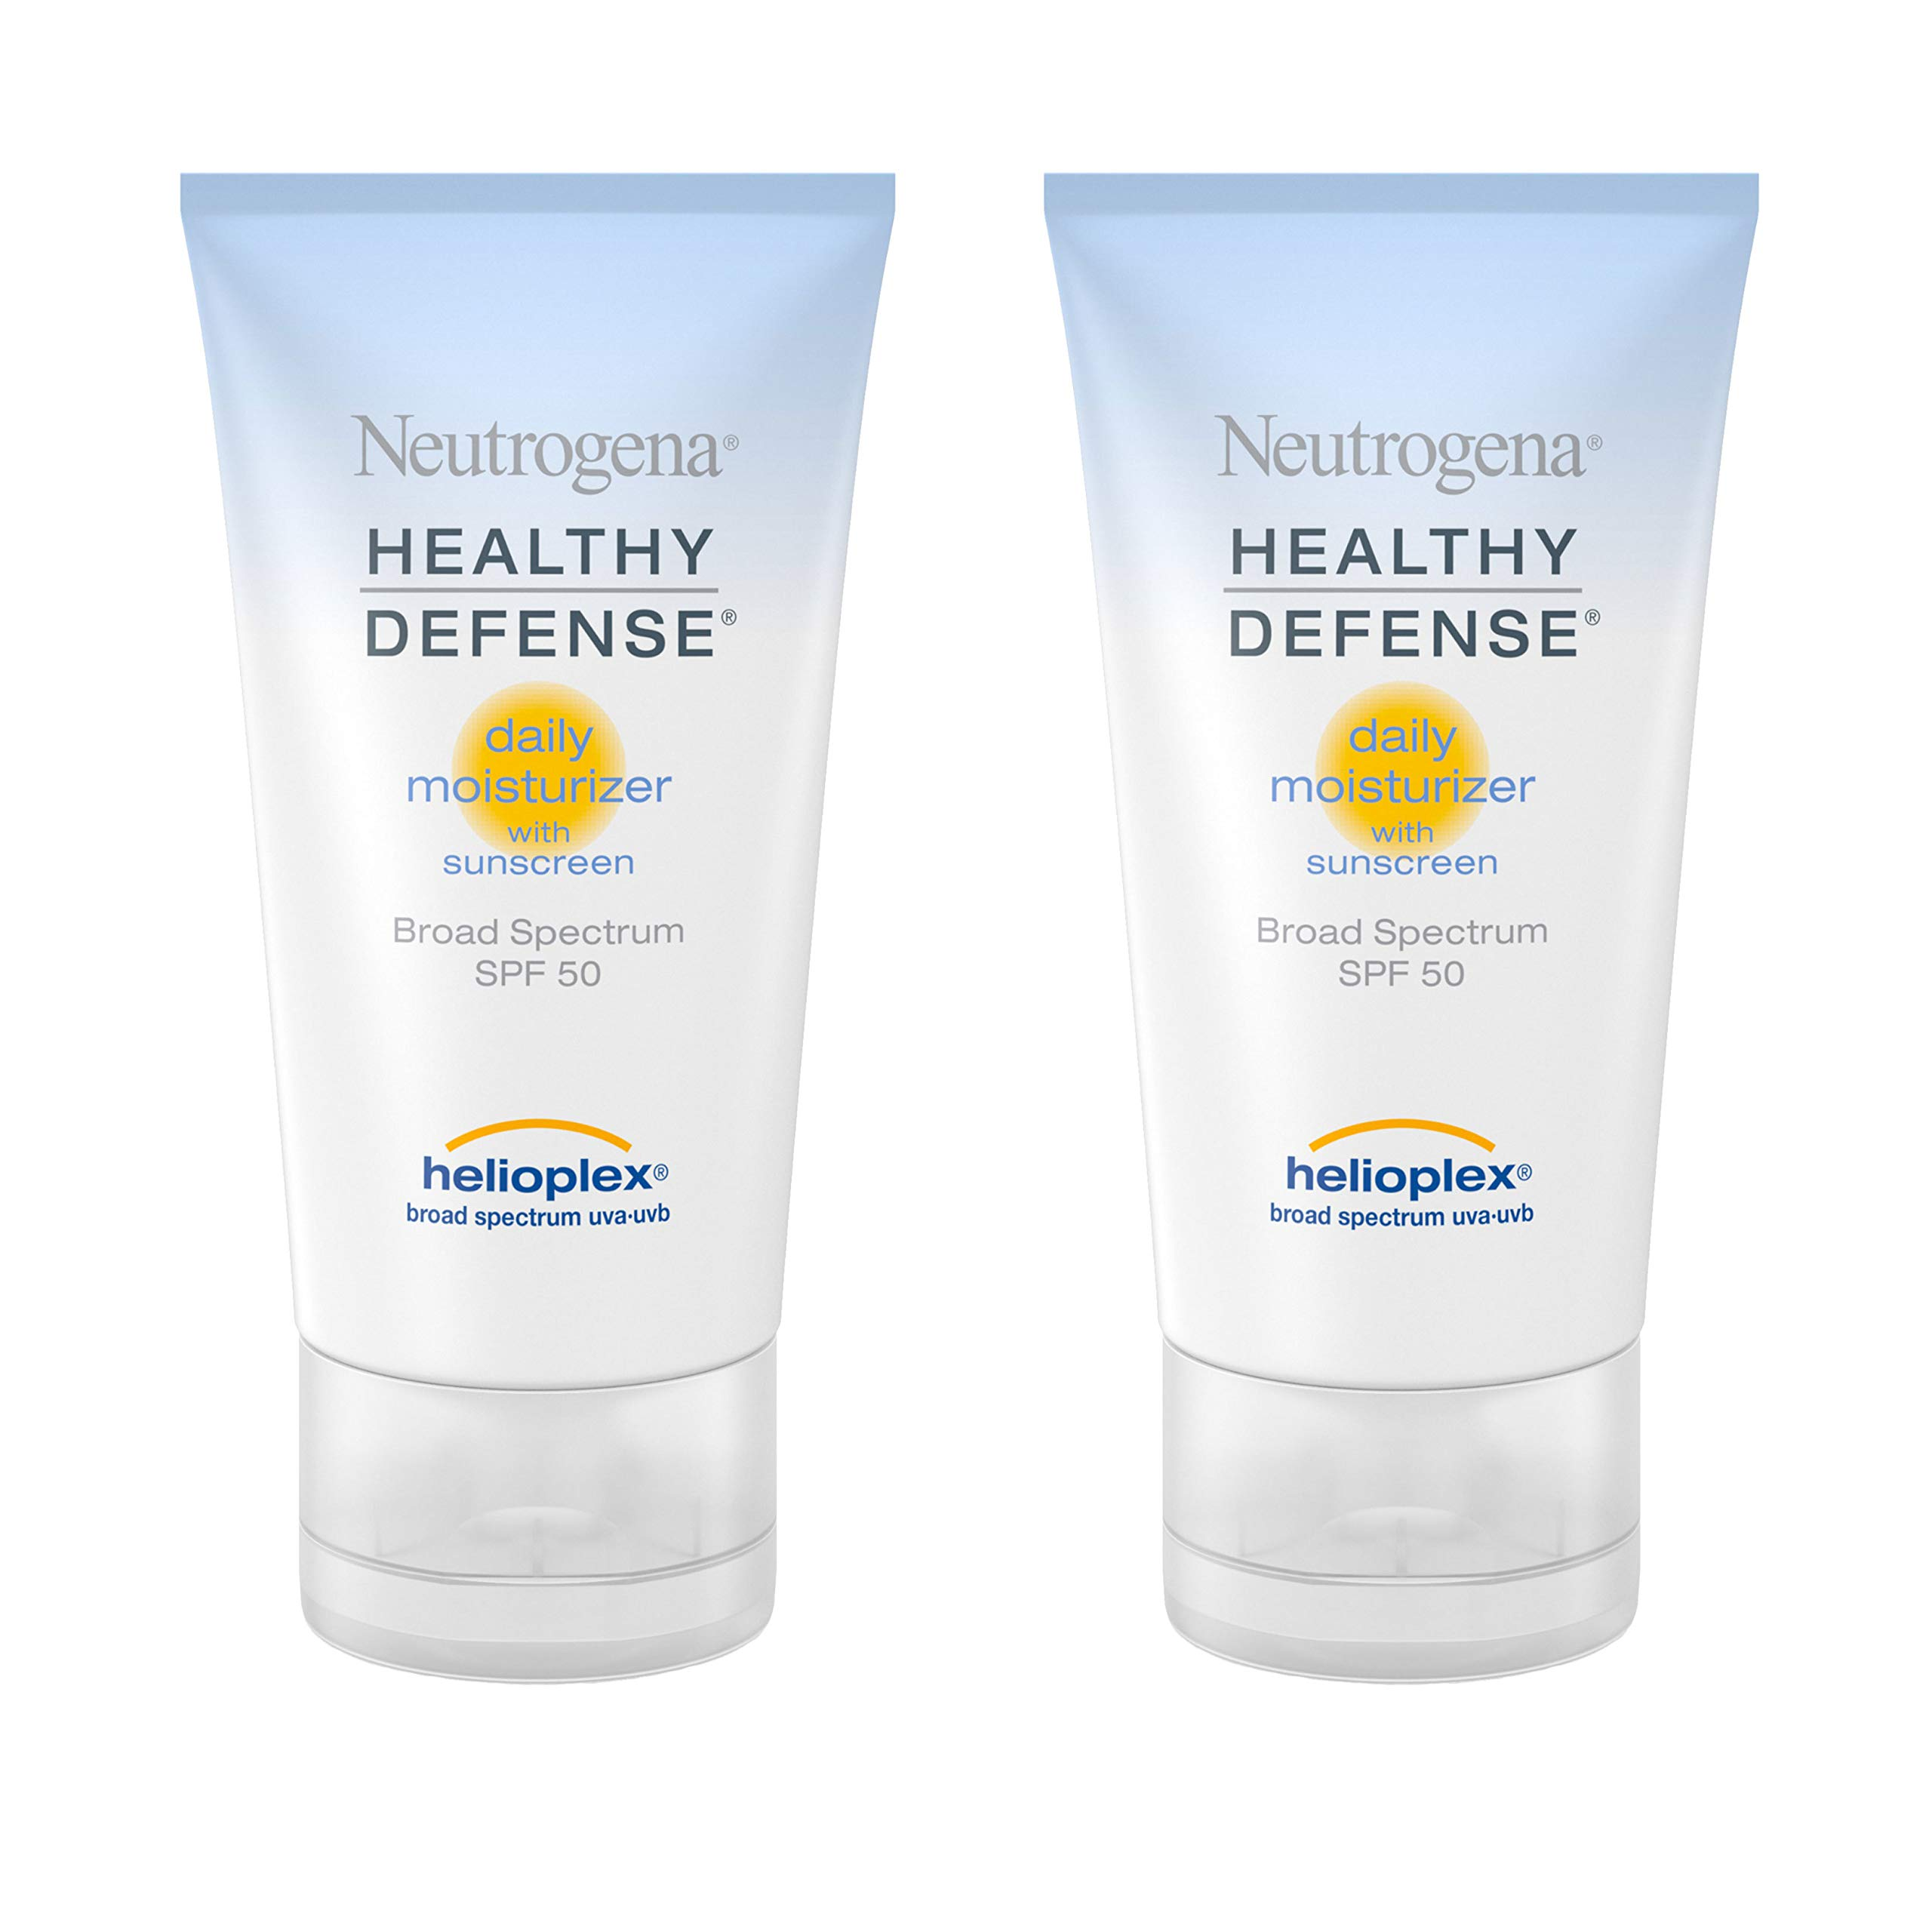 Neutrogena Healthy Defense Daily Vitamin C & Vitamin E Face Moisturizer, Non-Greasy Anti Wrinkle Face Lotion & Neck Cream with SPF 50 Sunscreen - Multivitamin Complex, 1.7 fl. oz(Pack of 2) by Neutrogena